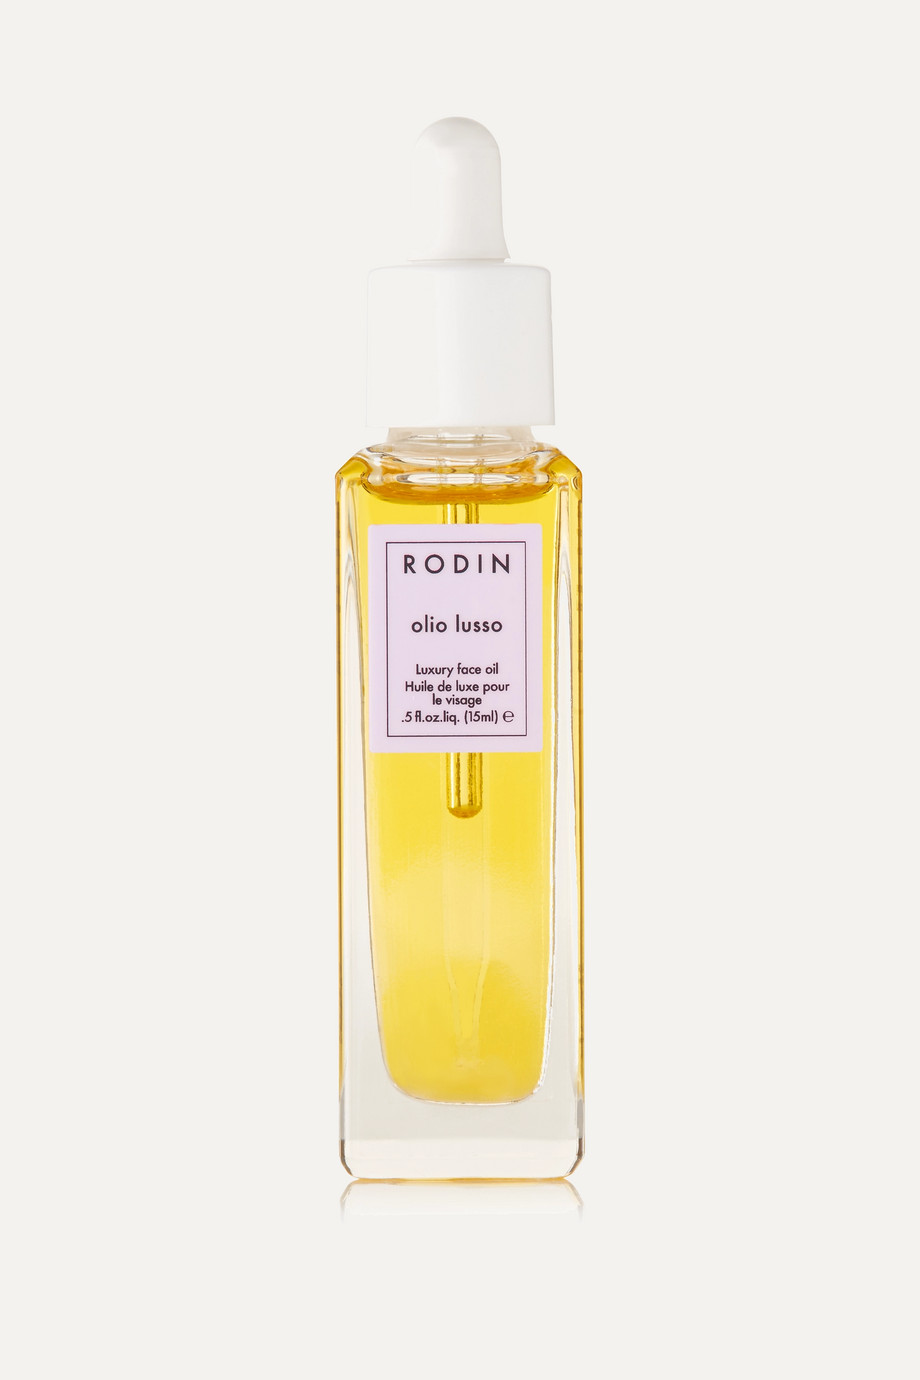 RODIN Luxury Face Oil Lavender Absolute, 15ml